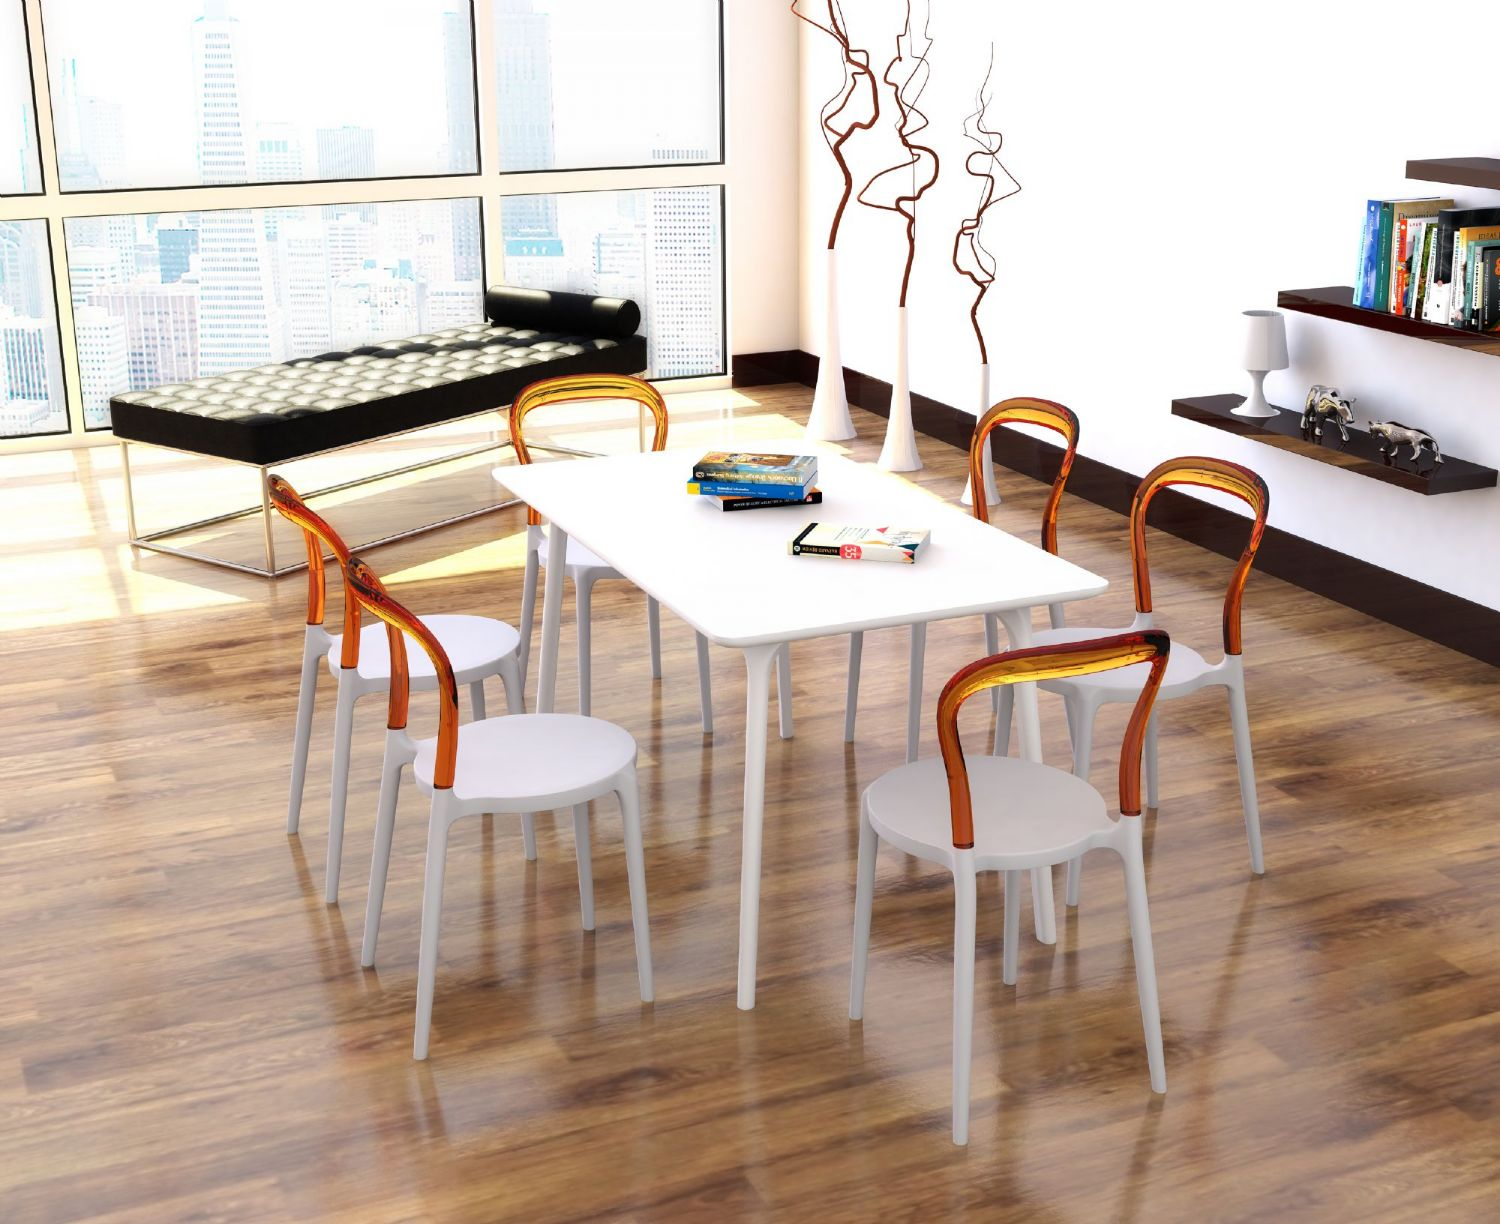 Mr Bobo Chair White with Transparent Back ISP056-WHI-TCL - 5